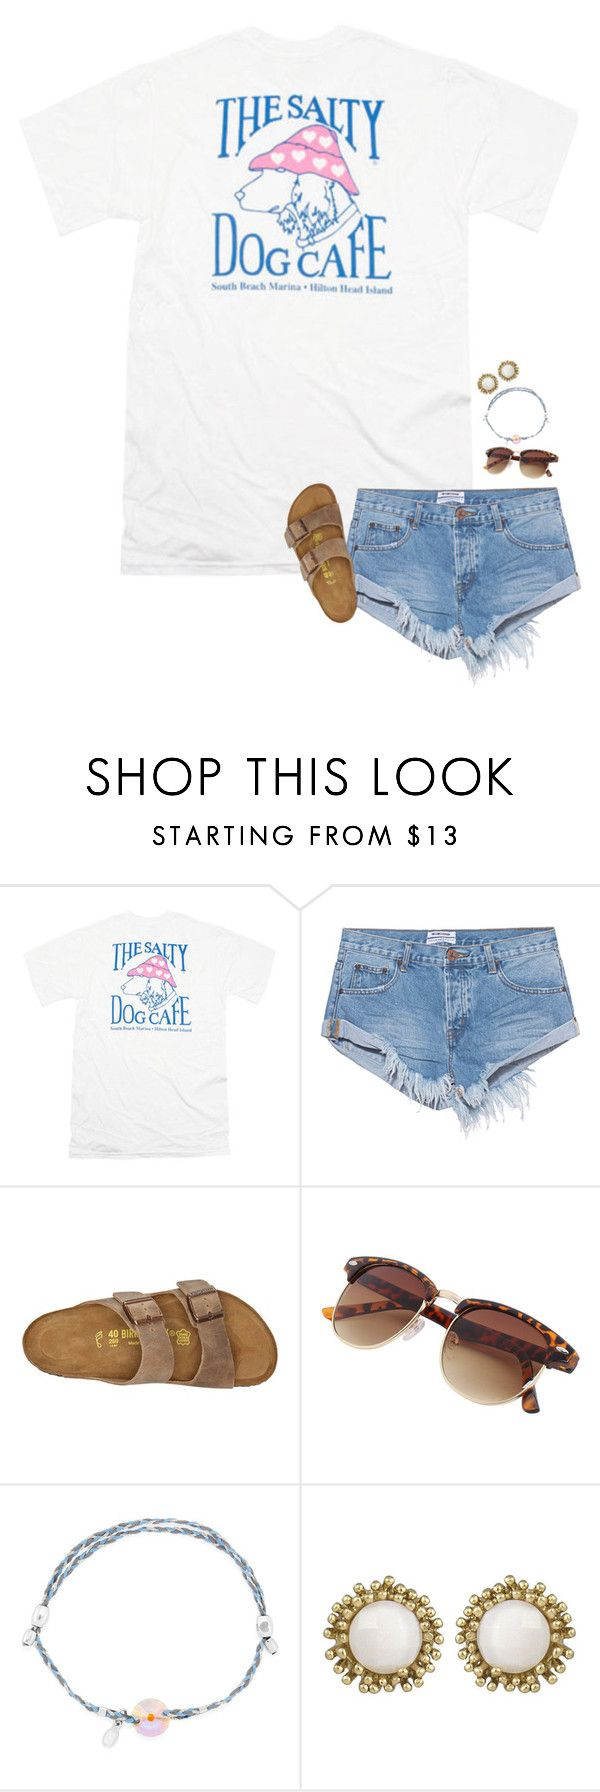 """I want a salty dog cafe shirt"" by sanddollars on Polyvore featuring One Teaspoon, Birkenstock, Alex and Ani and Kendra Scott"